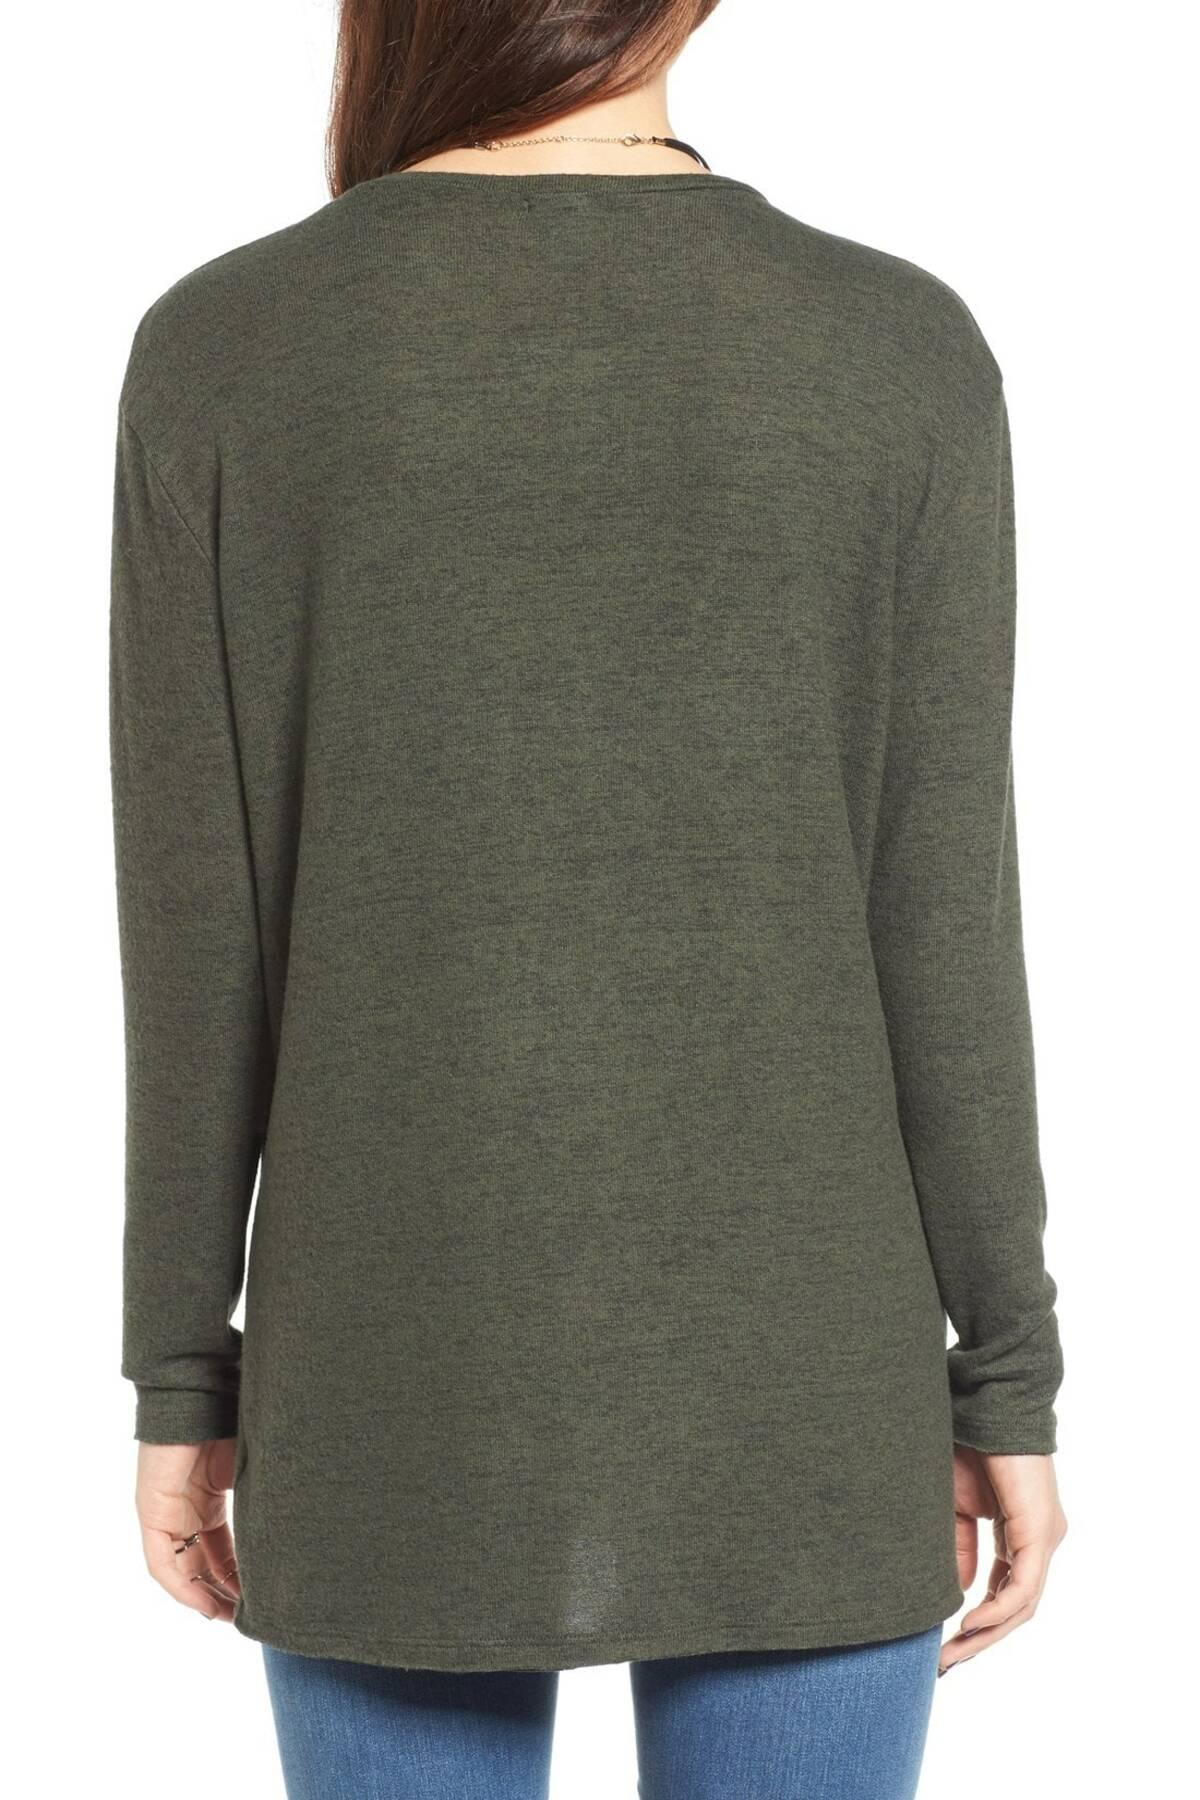 737e98a61 Lyst - BP. Cozy V-neck Sweater (regular   Plus Size) in Green